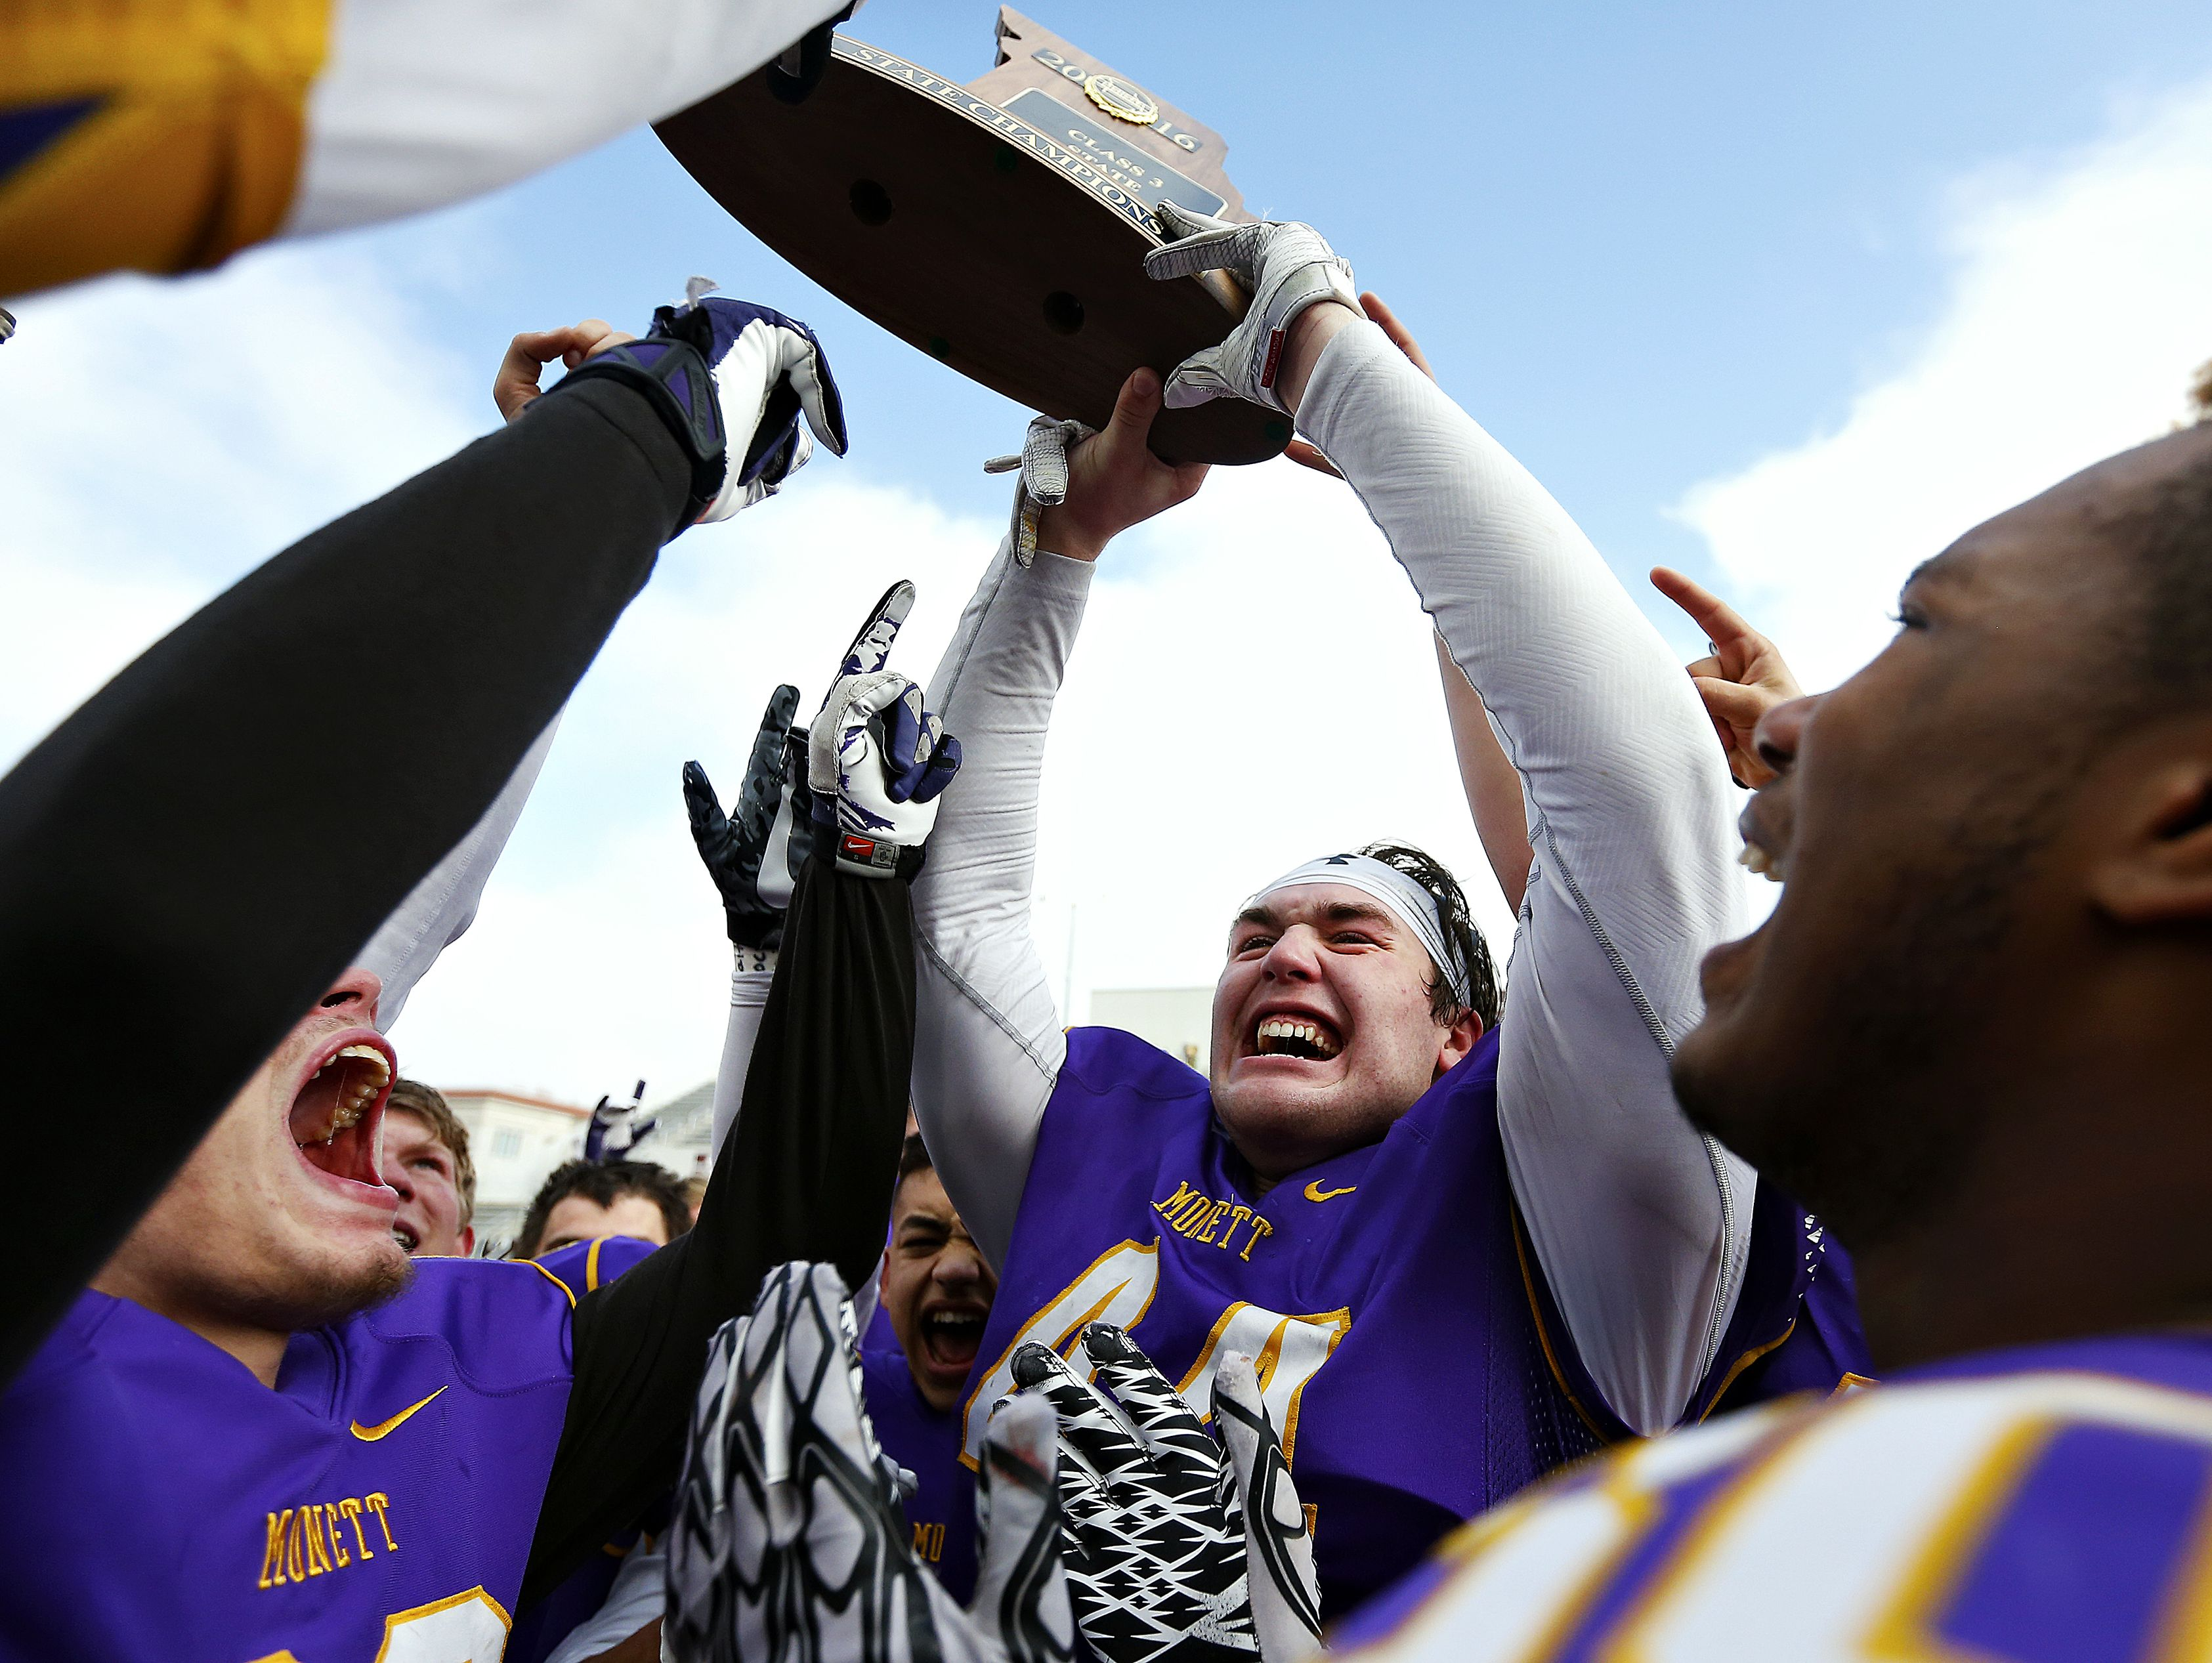 Monett High School tight end David Turner (44)and his teammates celebrate after emerging victorious from the MSHSAA Class 3 State Championship Game between the Monett High School Cubs and the Maryville High School Spoofhounds at Robert W. Plaster Stadium in Springfield, Mo. on Nov. 26, 2016. The Monett Cubs won the game 27-18.